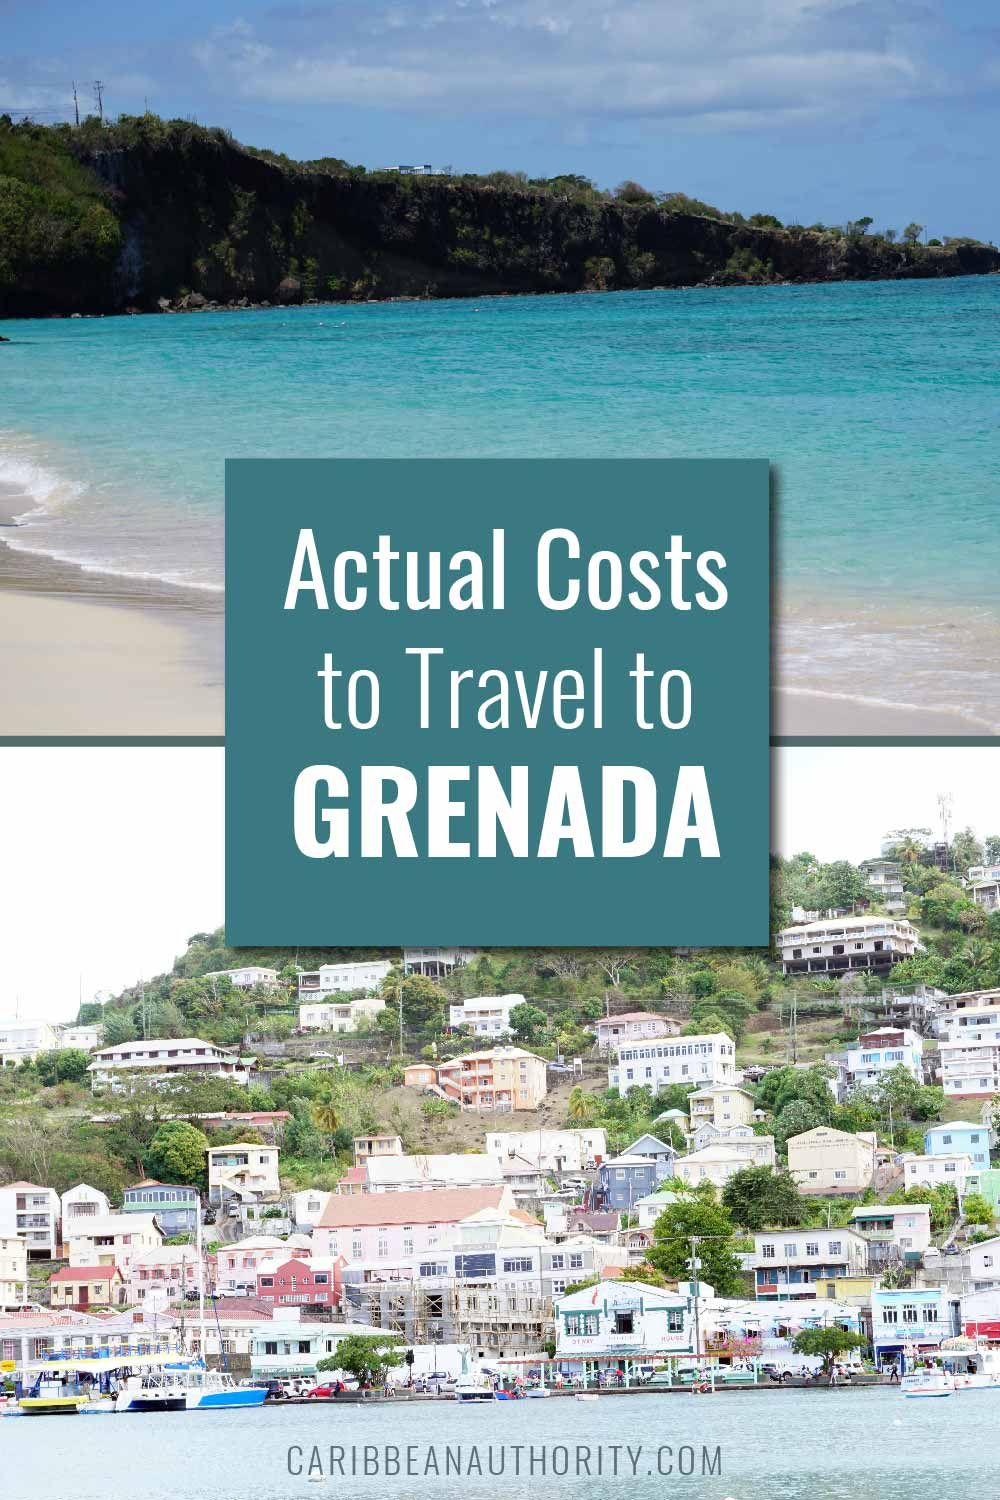 Actual Costs To Travel To Grenada Luxury Budget Options Best Places To Travel All Inclusive Vacation Packages Travel